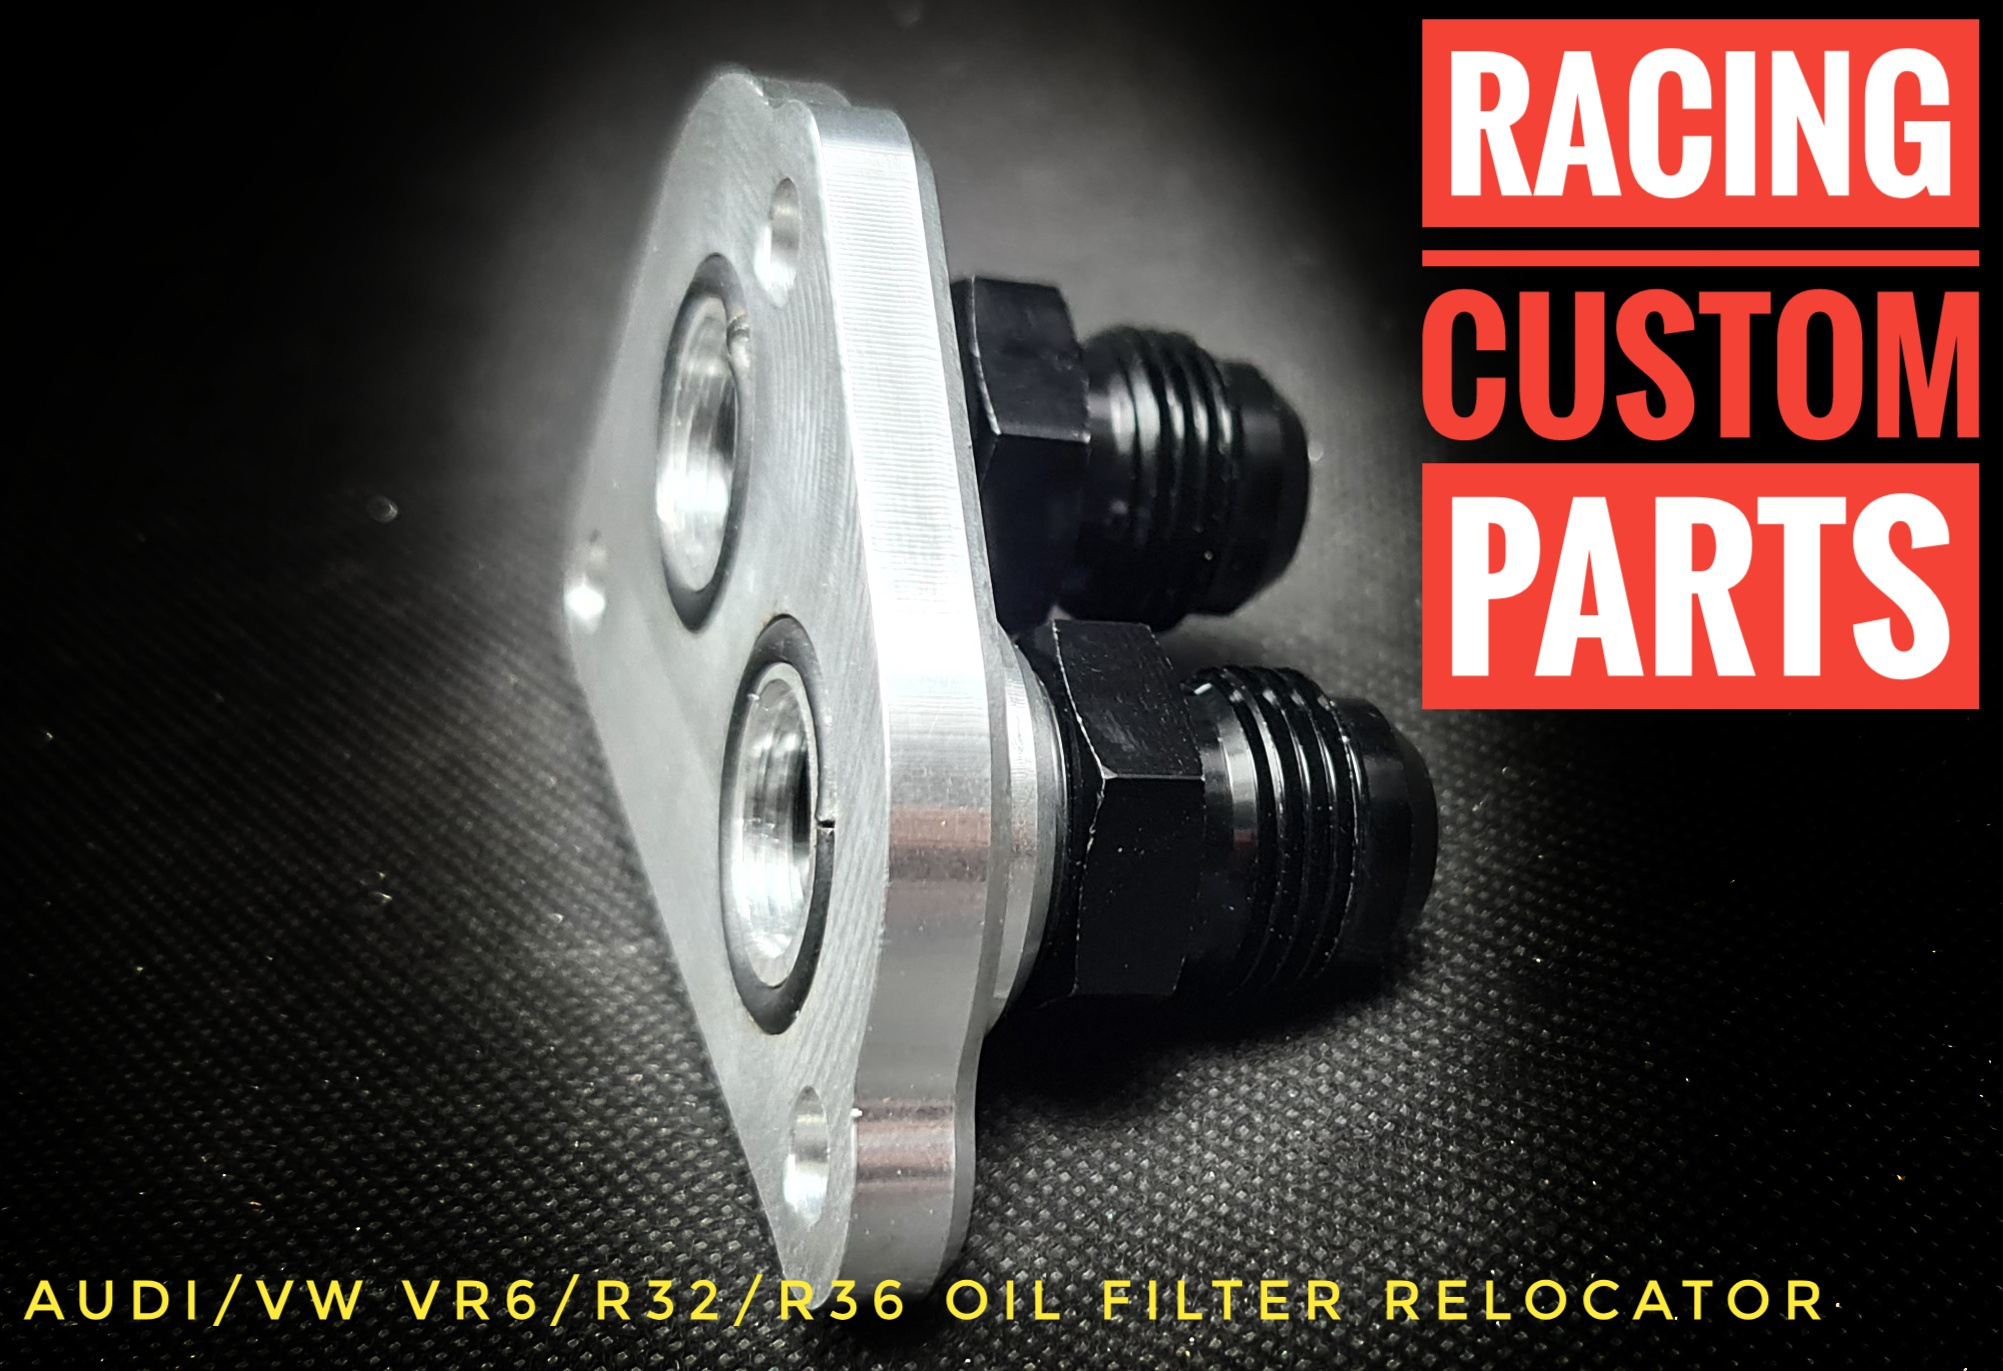 audi vw vr6 r32 r36 oil filter relocator billet cnc racing custom parts turbo